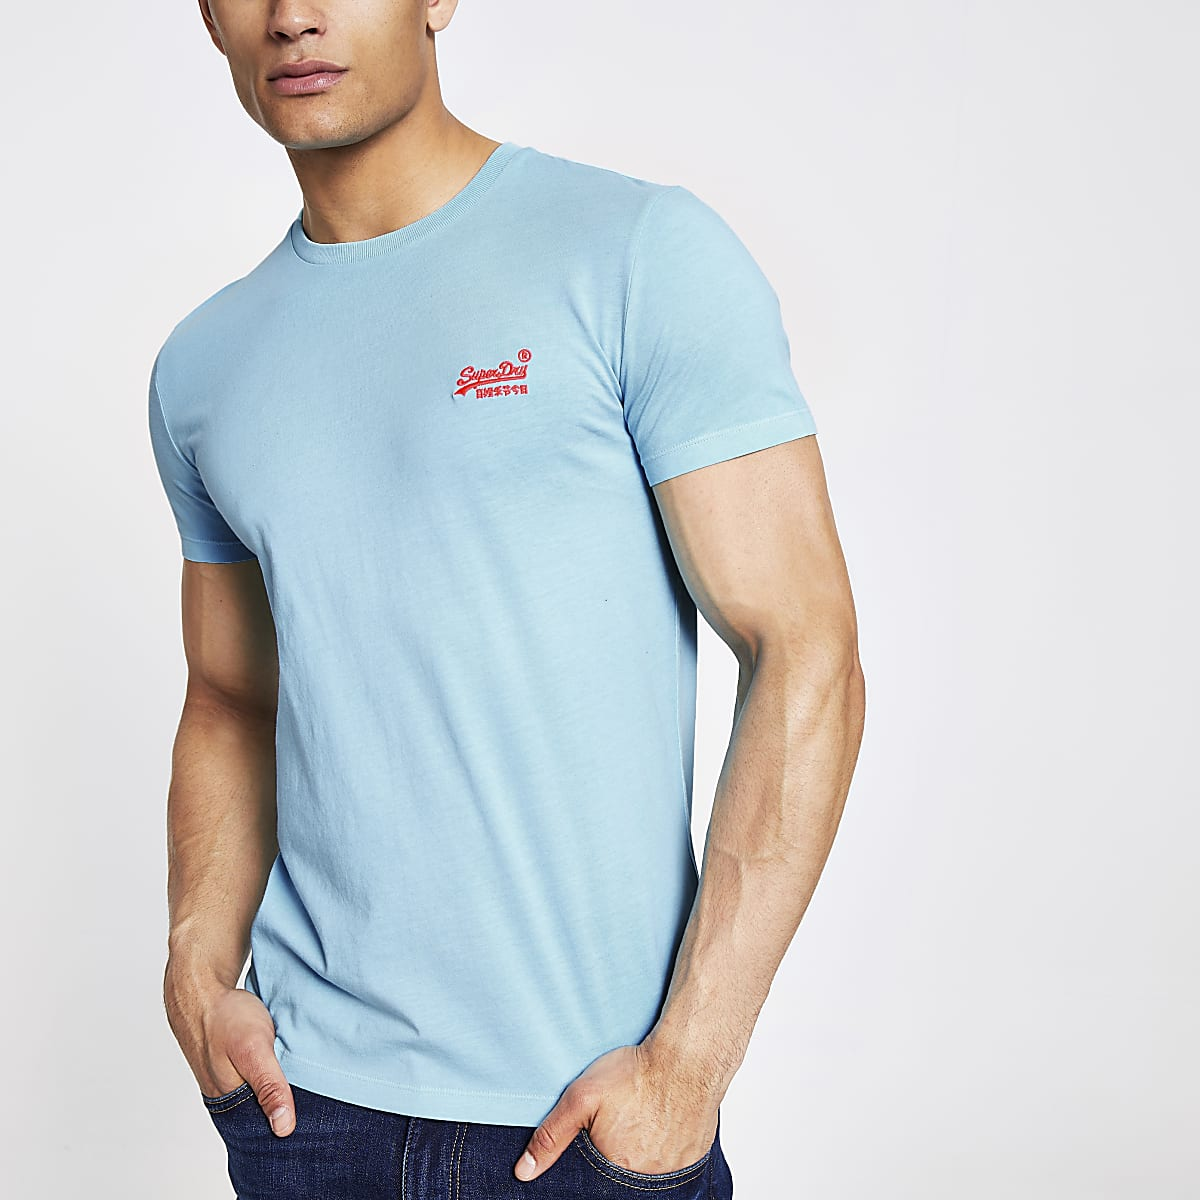 Superdry blue neon embroidered T-shirt